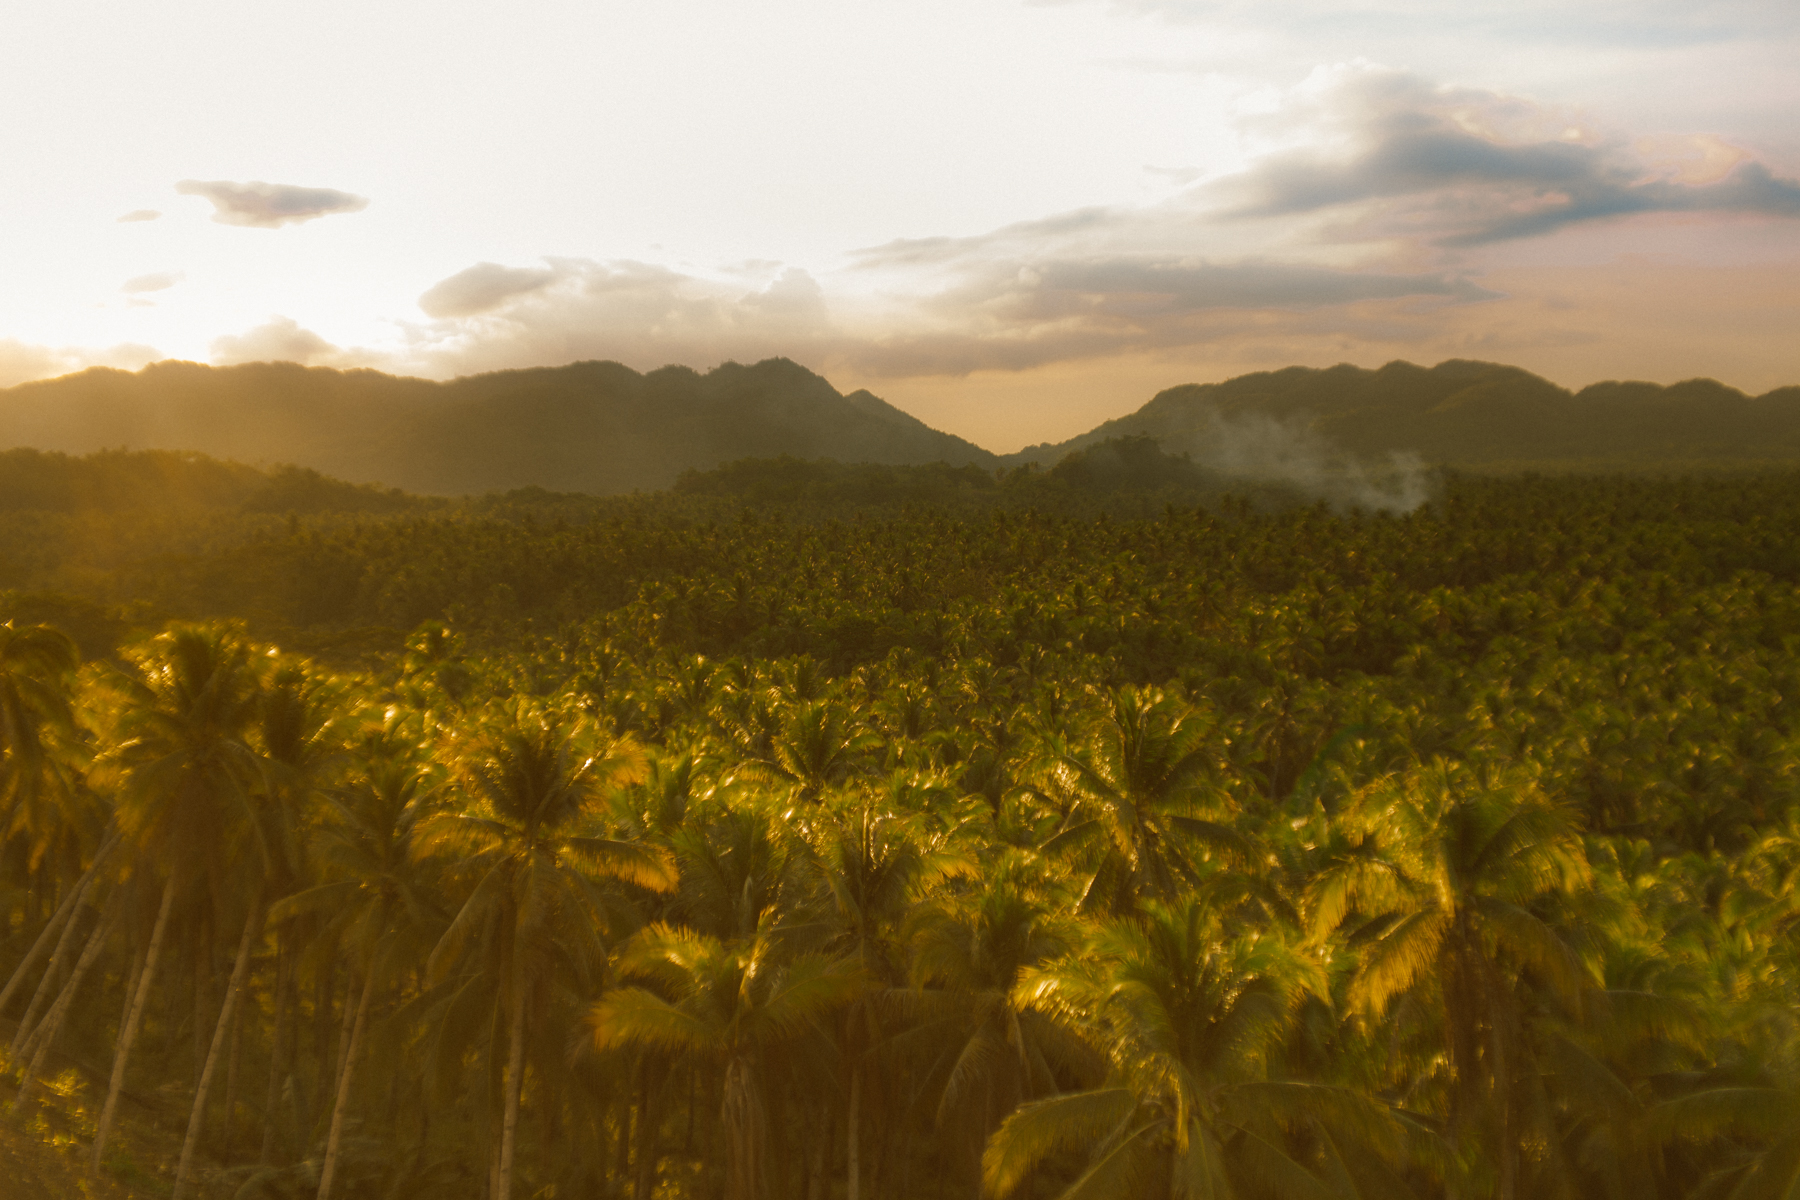 Siargao, Philippines - Coconut Tree Canopy - Sunset Feels